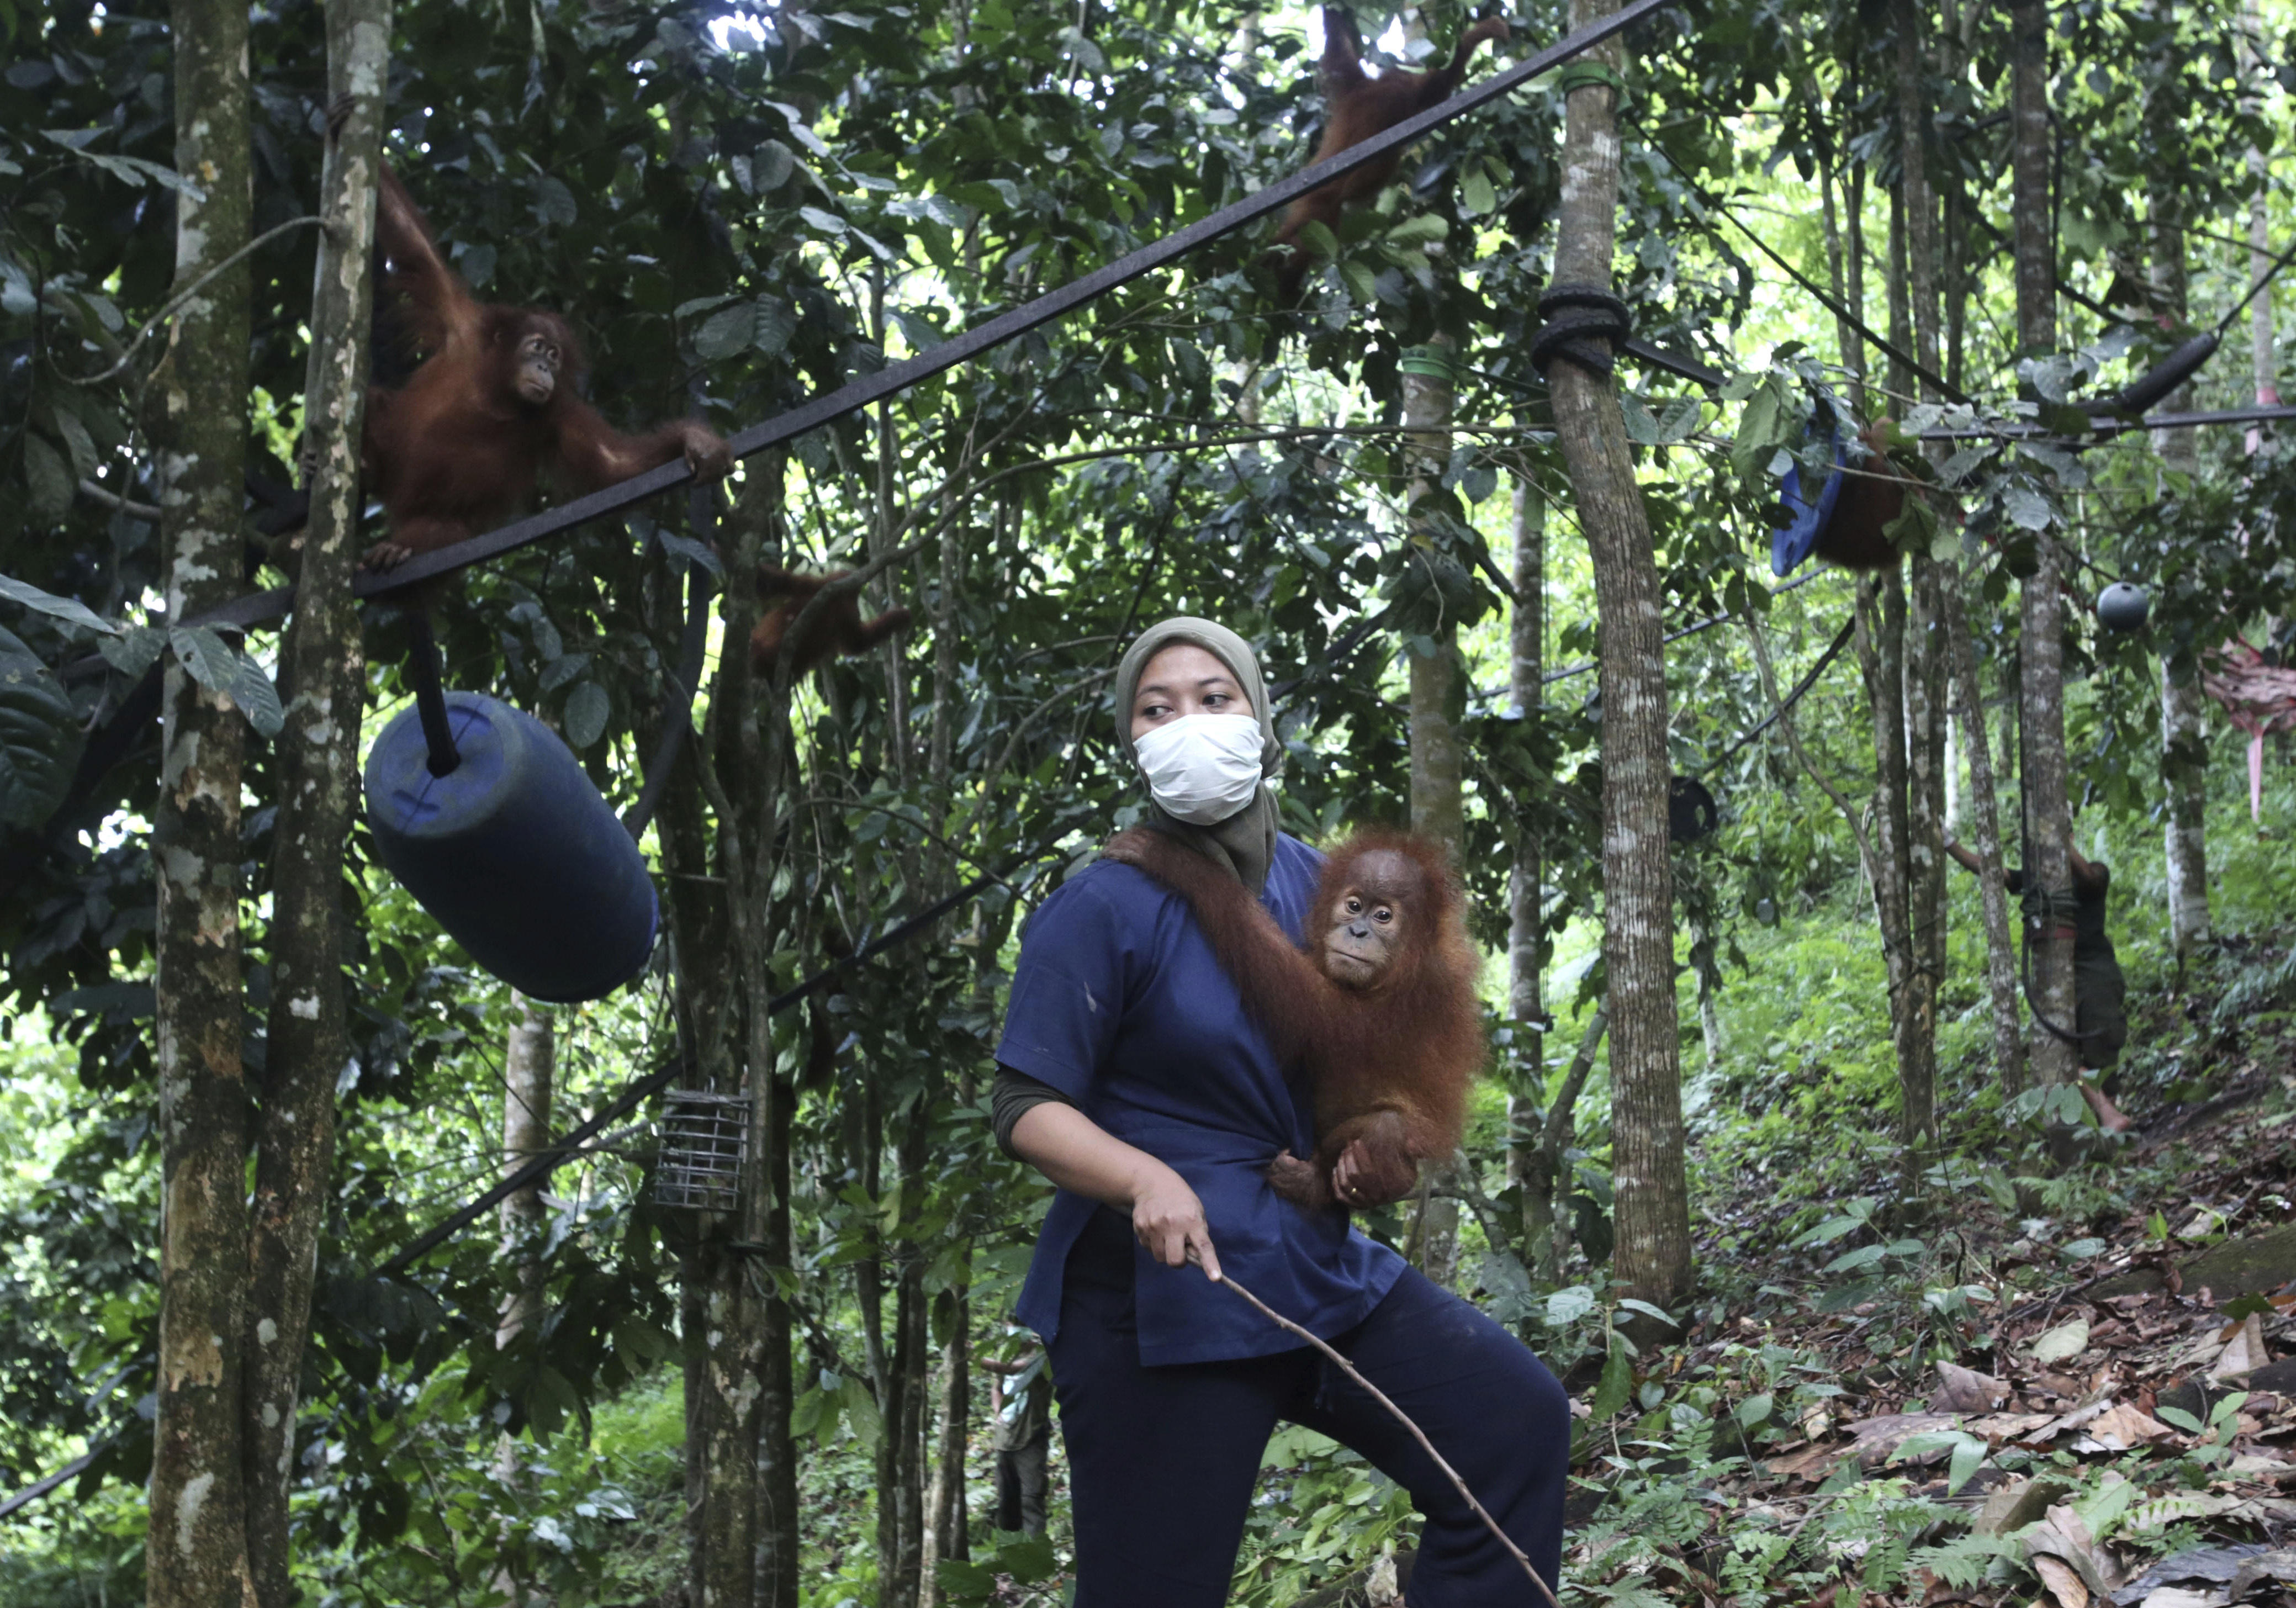 Orangutan sanctuary occupied by humans